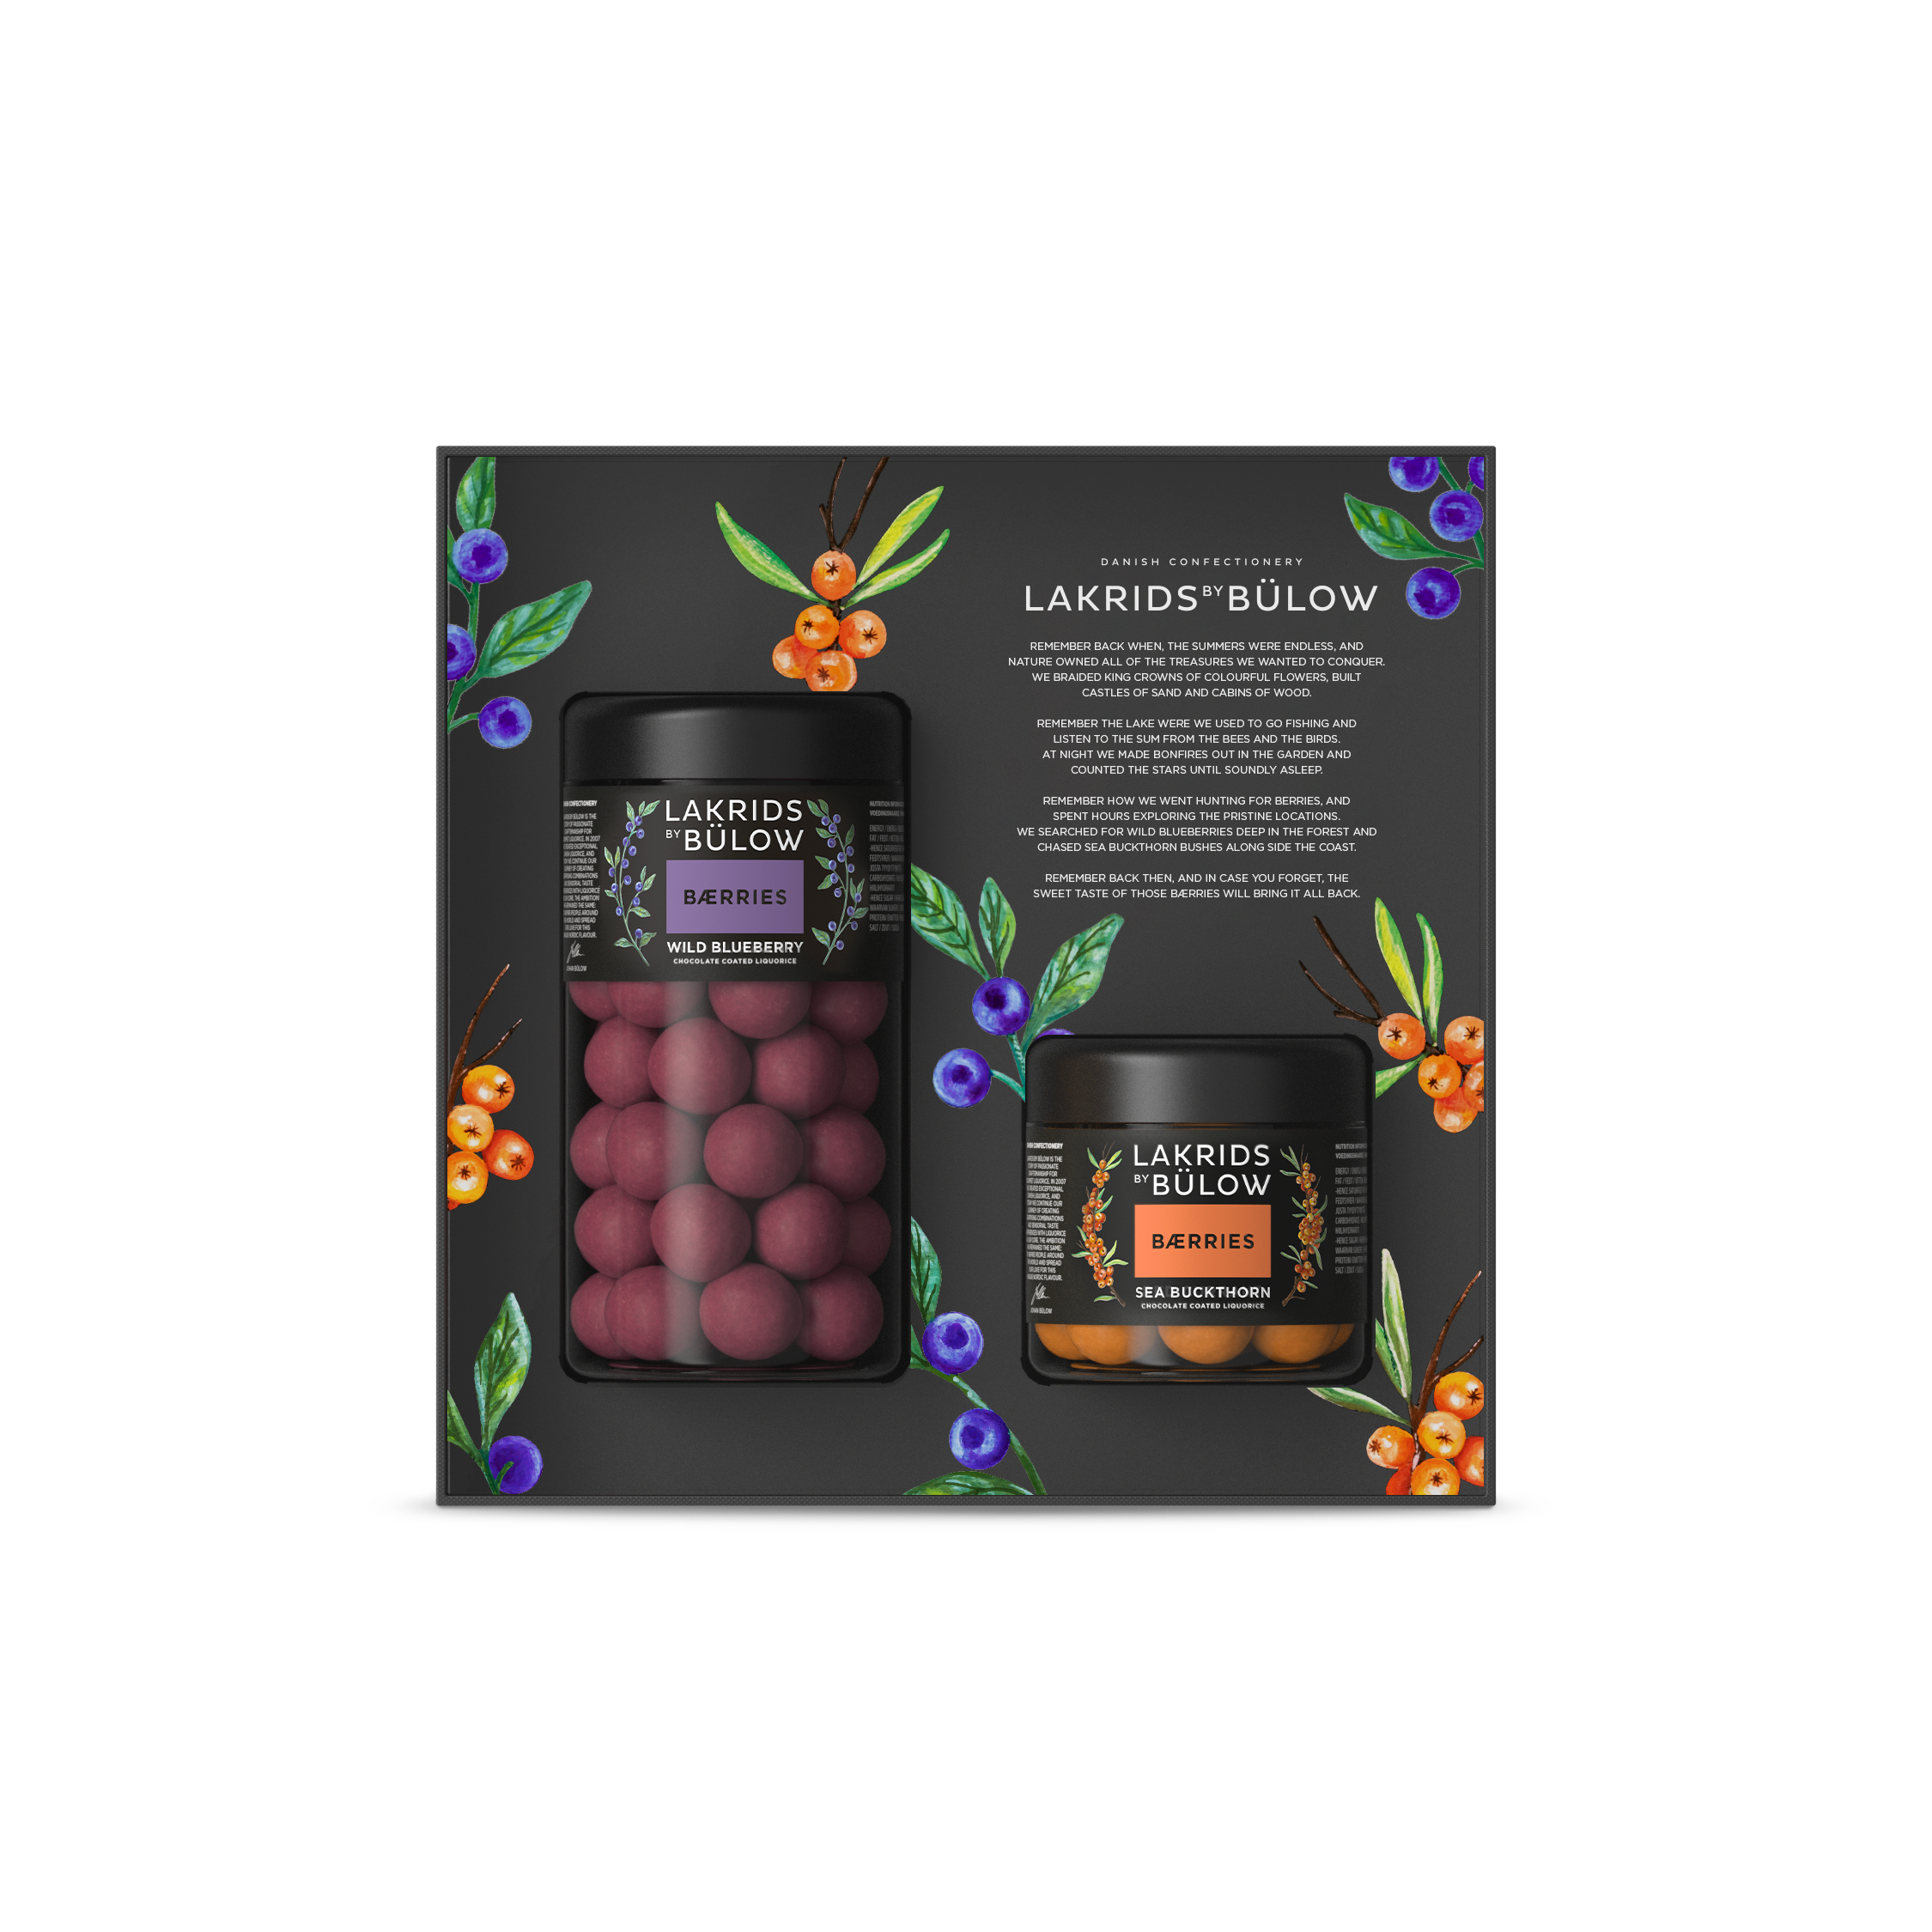 Lakrids By Bülow - ?Black Box Regular/Small Blueberry/Sea Buckthorn Bærries 420 g (500364)